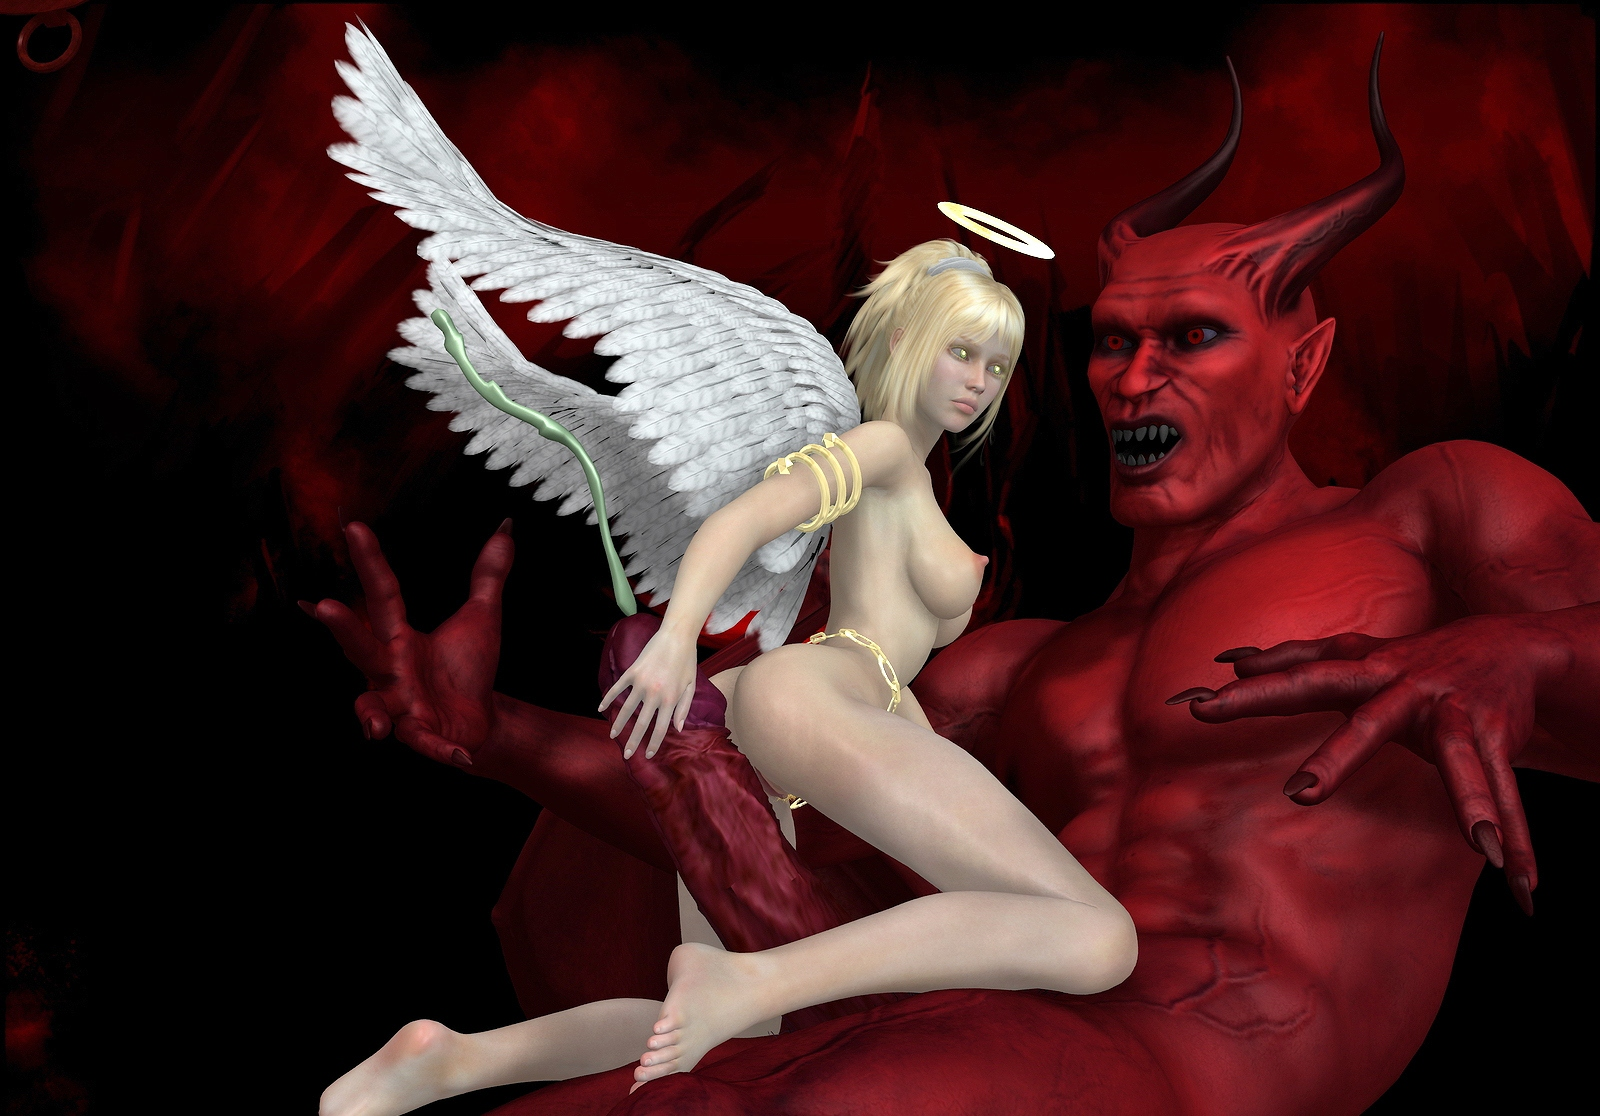 Cosplay demon fuck photo naked images